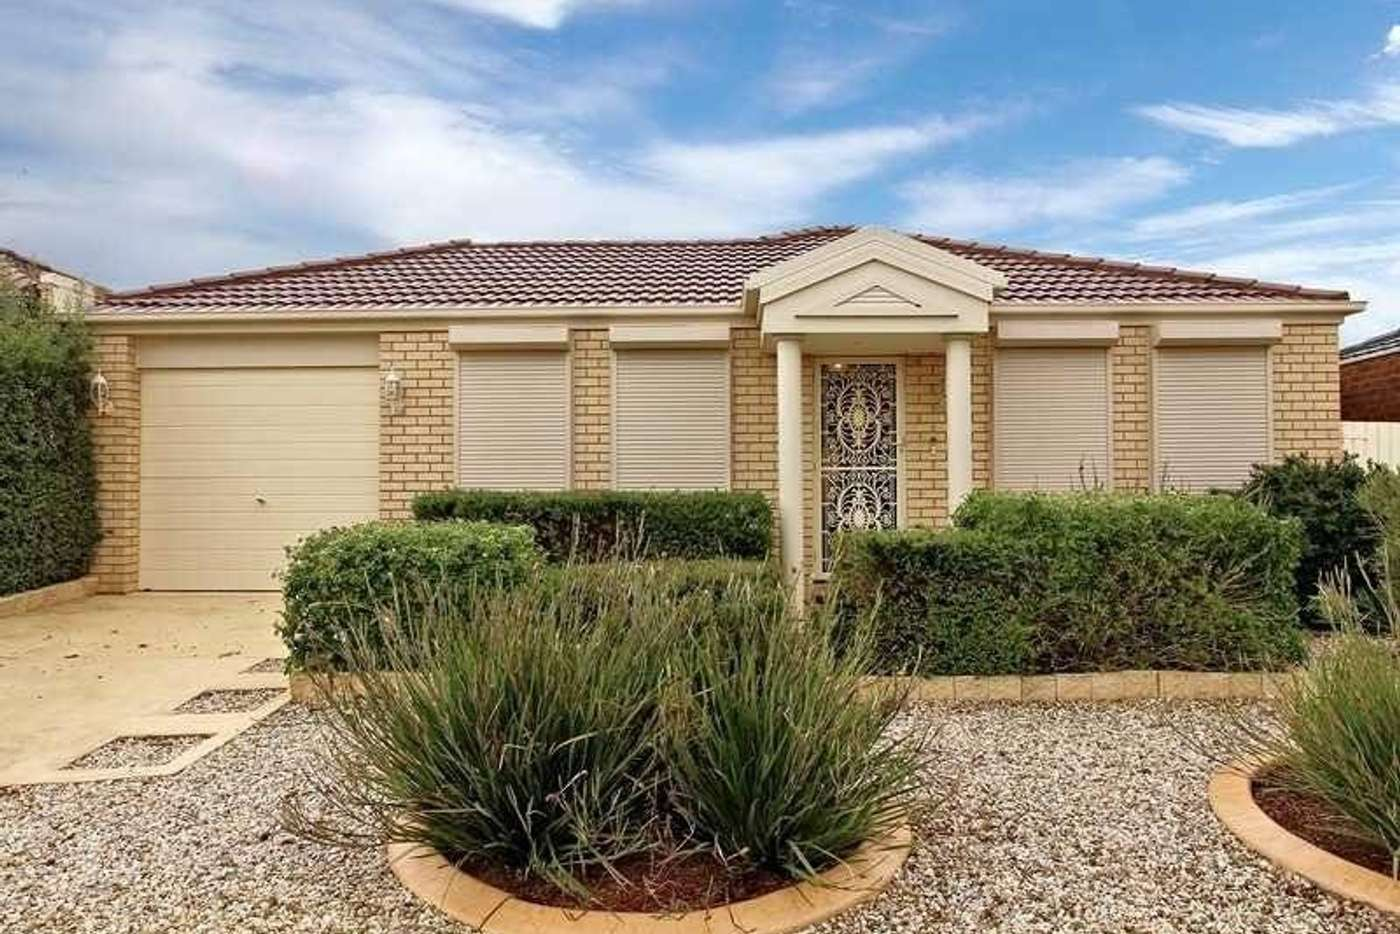 Main view of Homely house listing, 5 Rainsford Place, Melton West VIC 3337